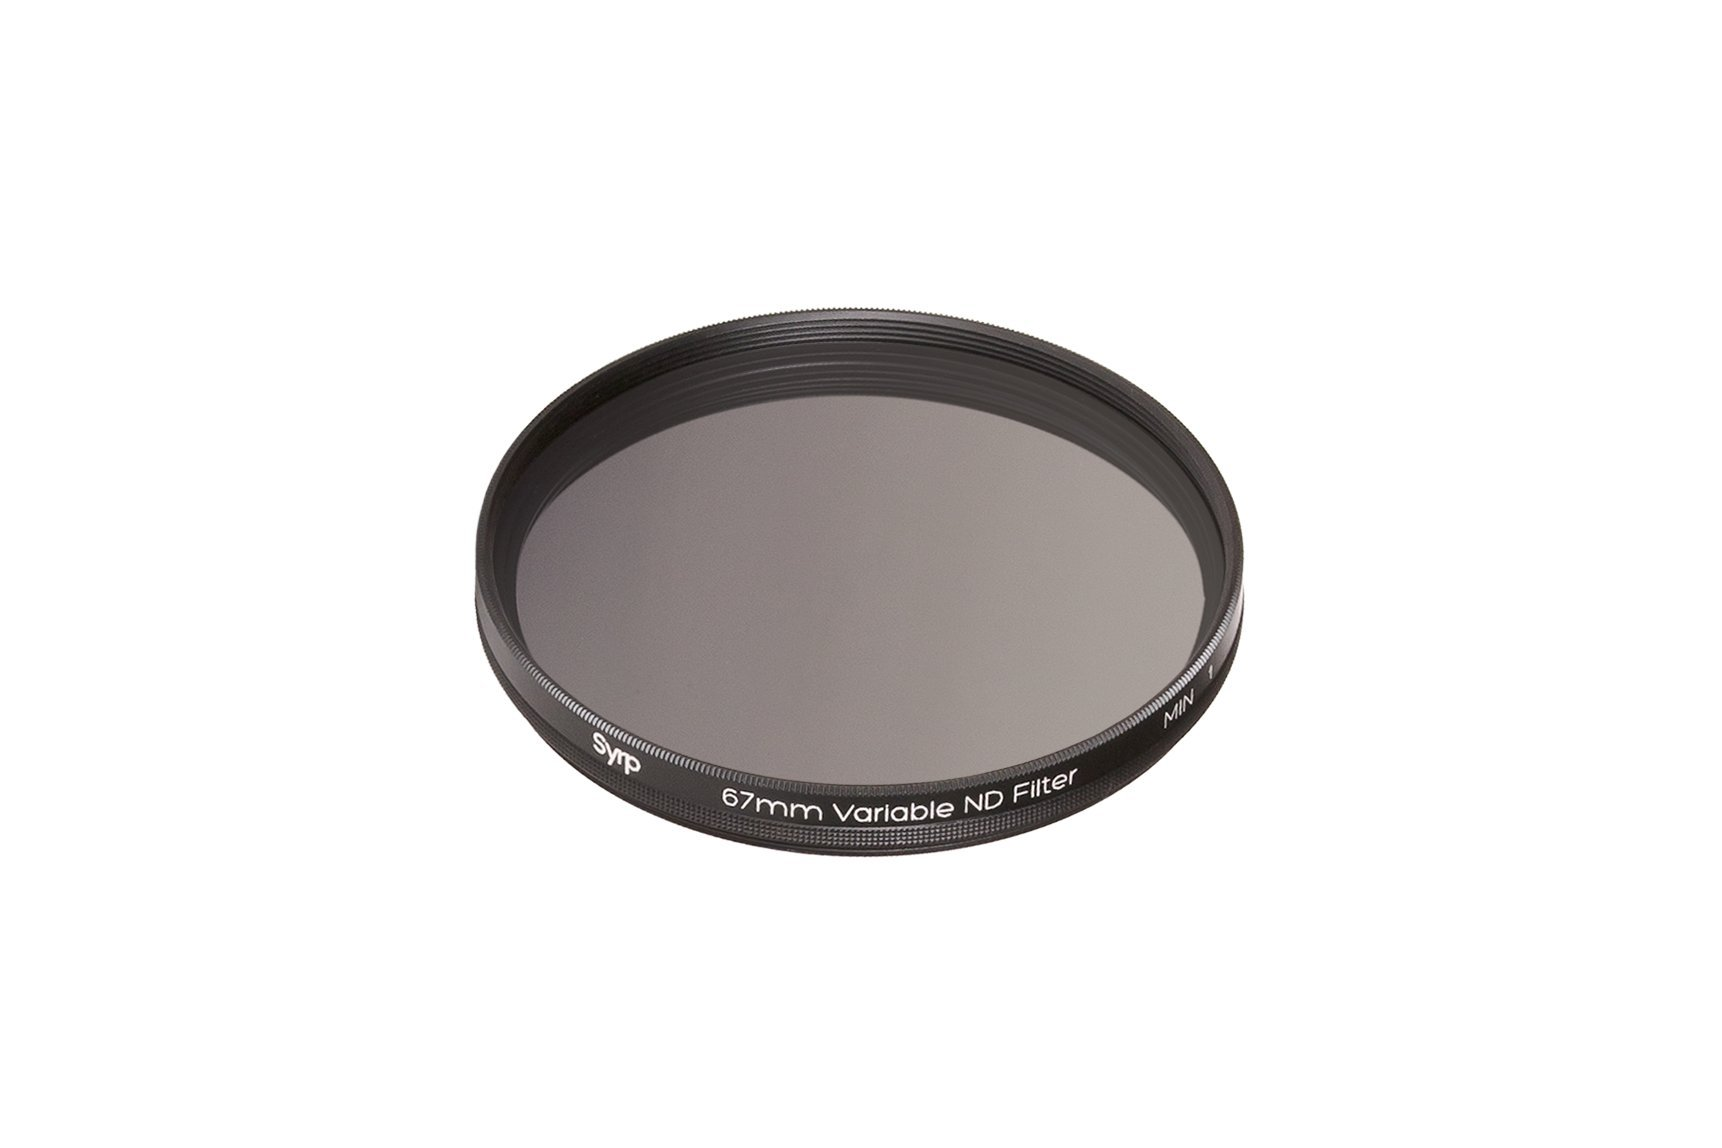 Syrp Small (67mm) Variable ND Filter by SYRP